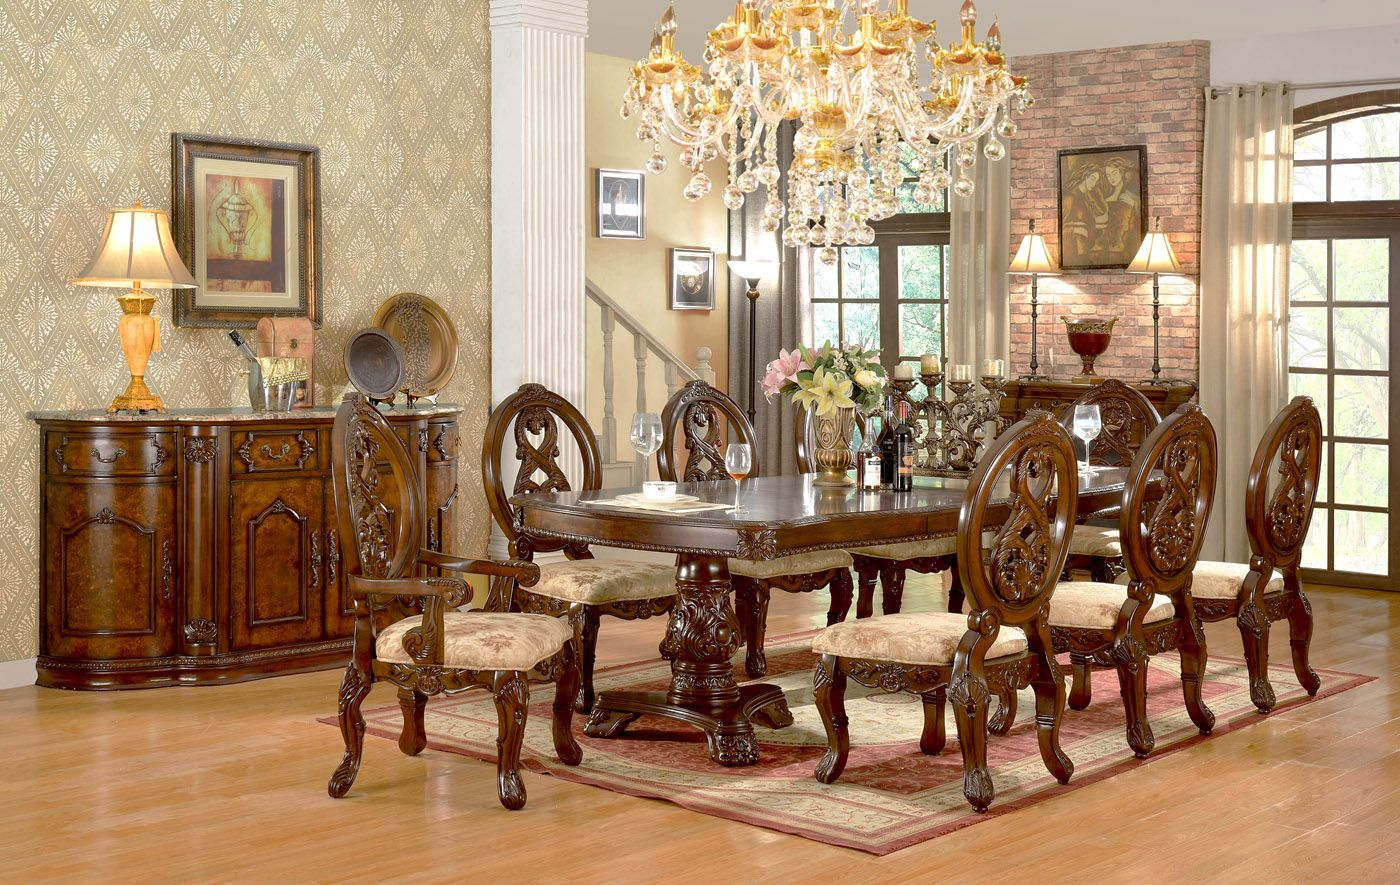 Windham Formal Dining Set Cherry Brown, Cherry Wood Dining Room Sets